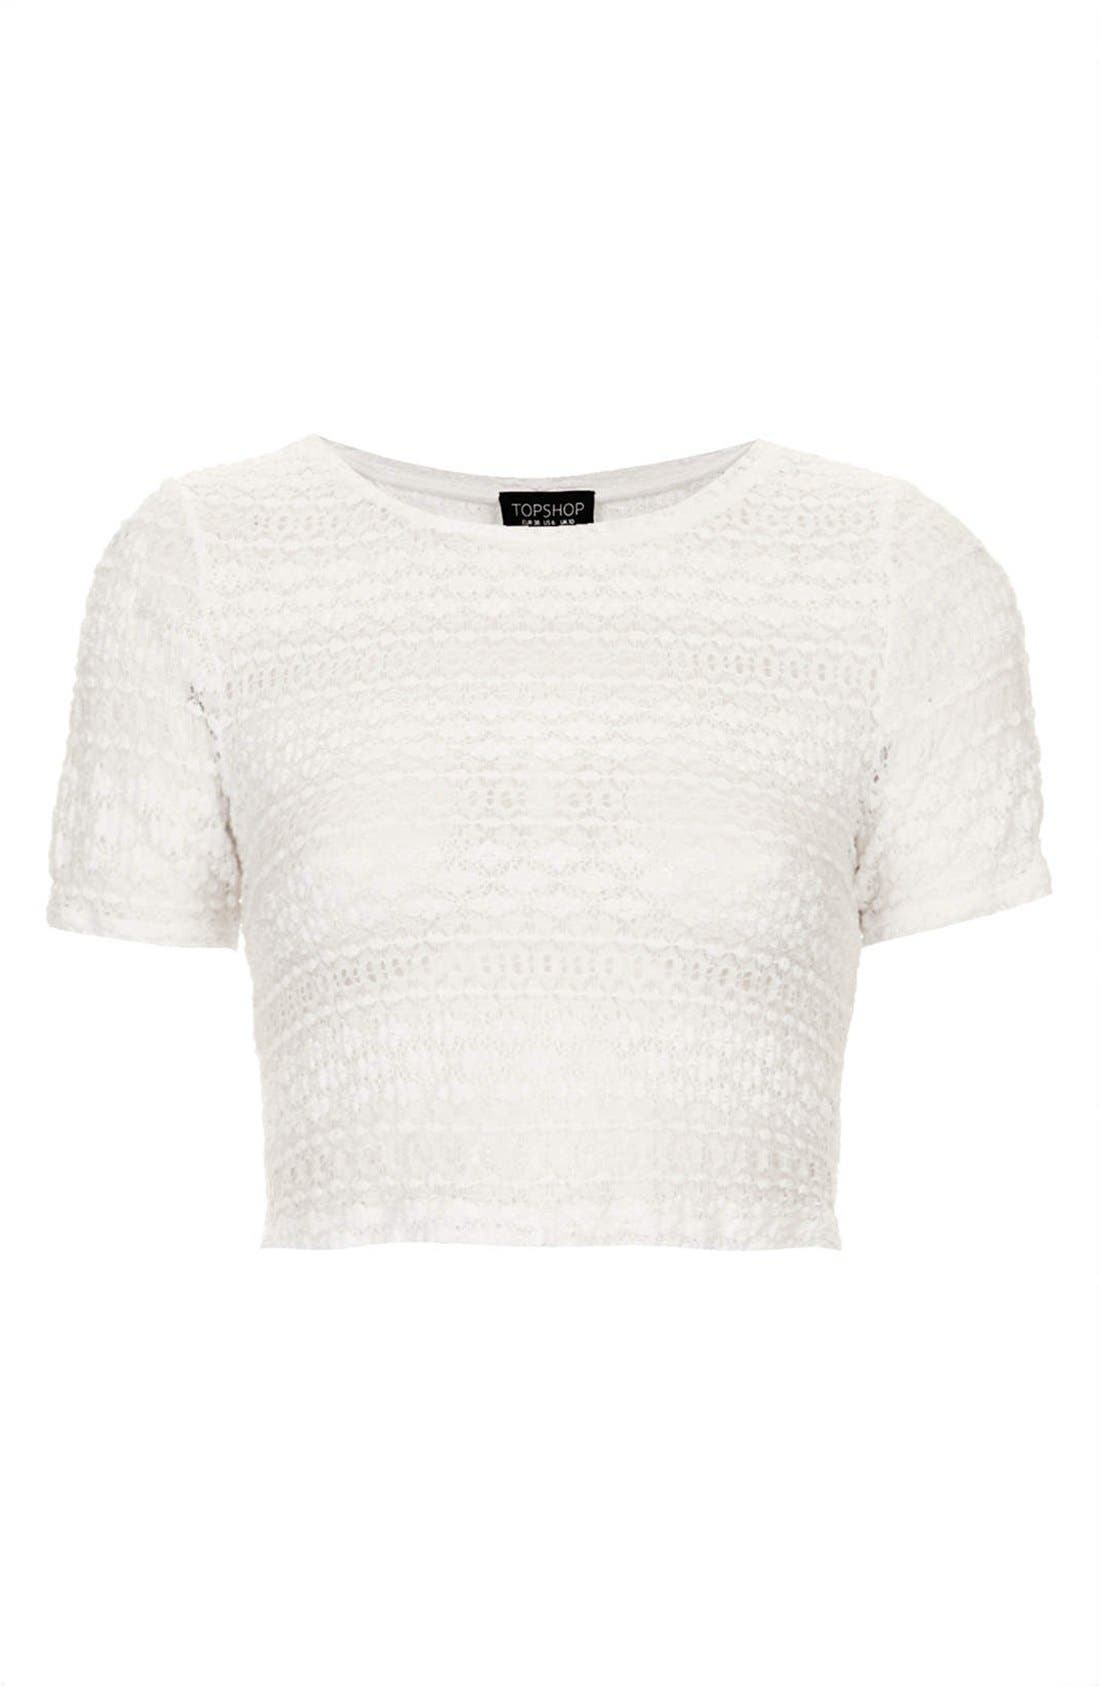 Alternate Image 3  - Topshop Textured Lace Crop Tee (Regular & Petite)